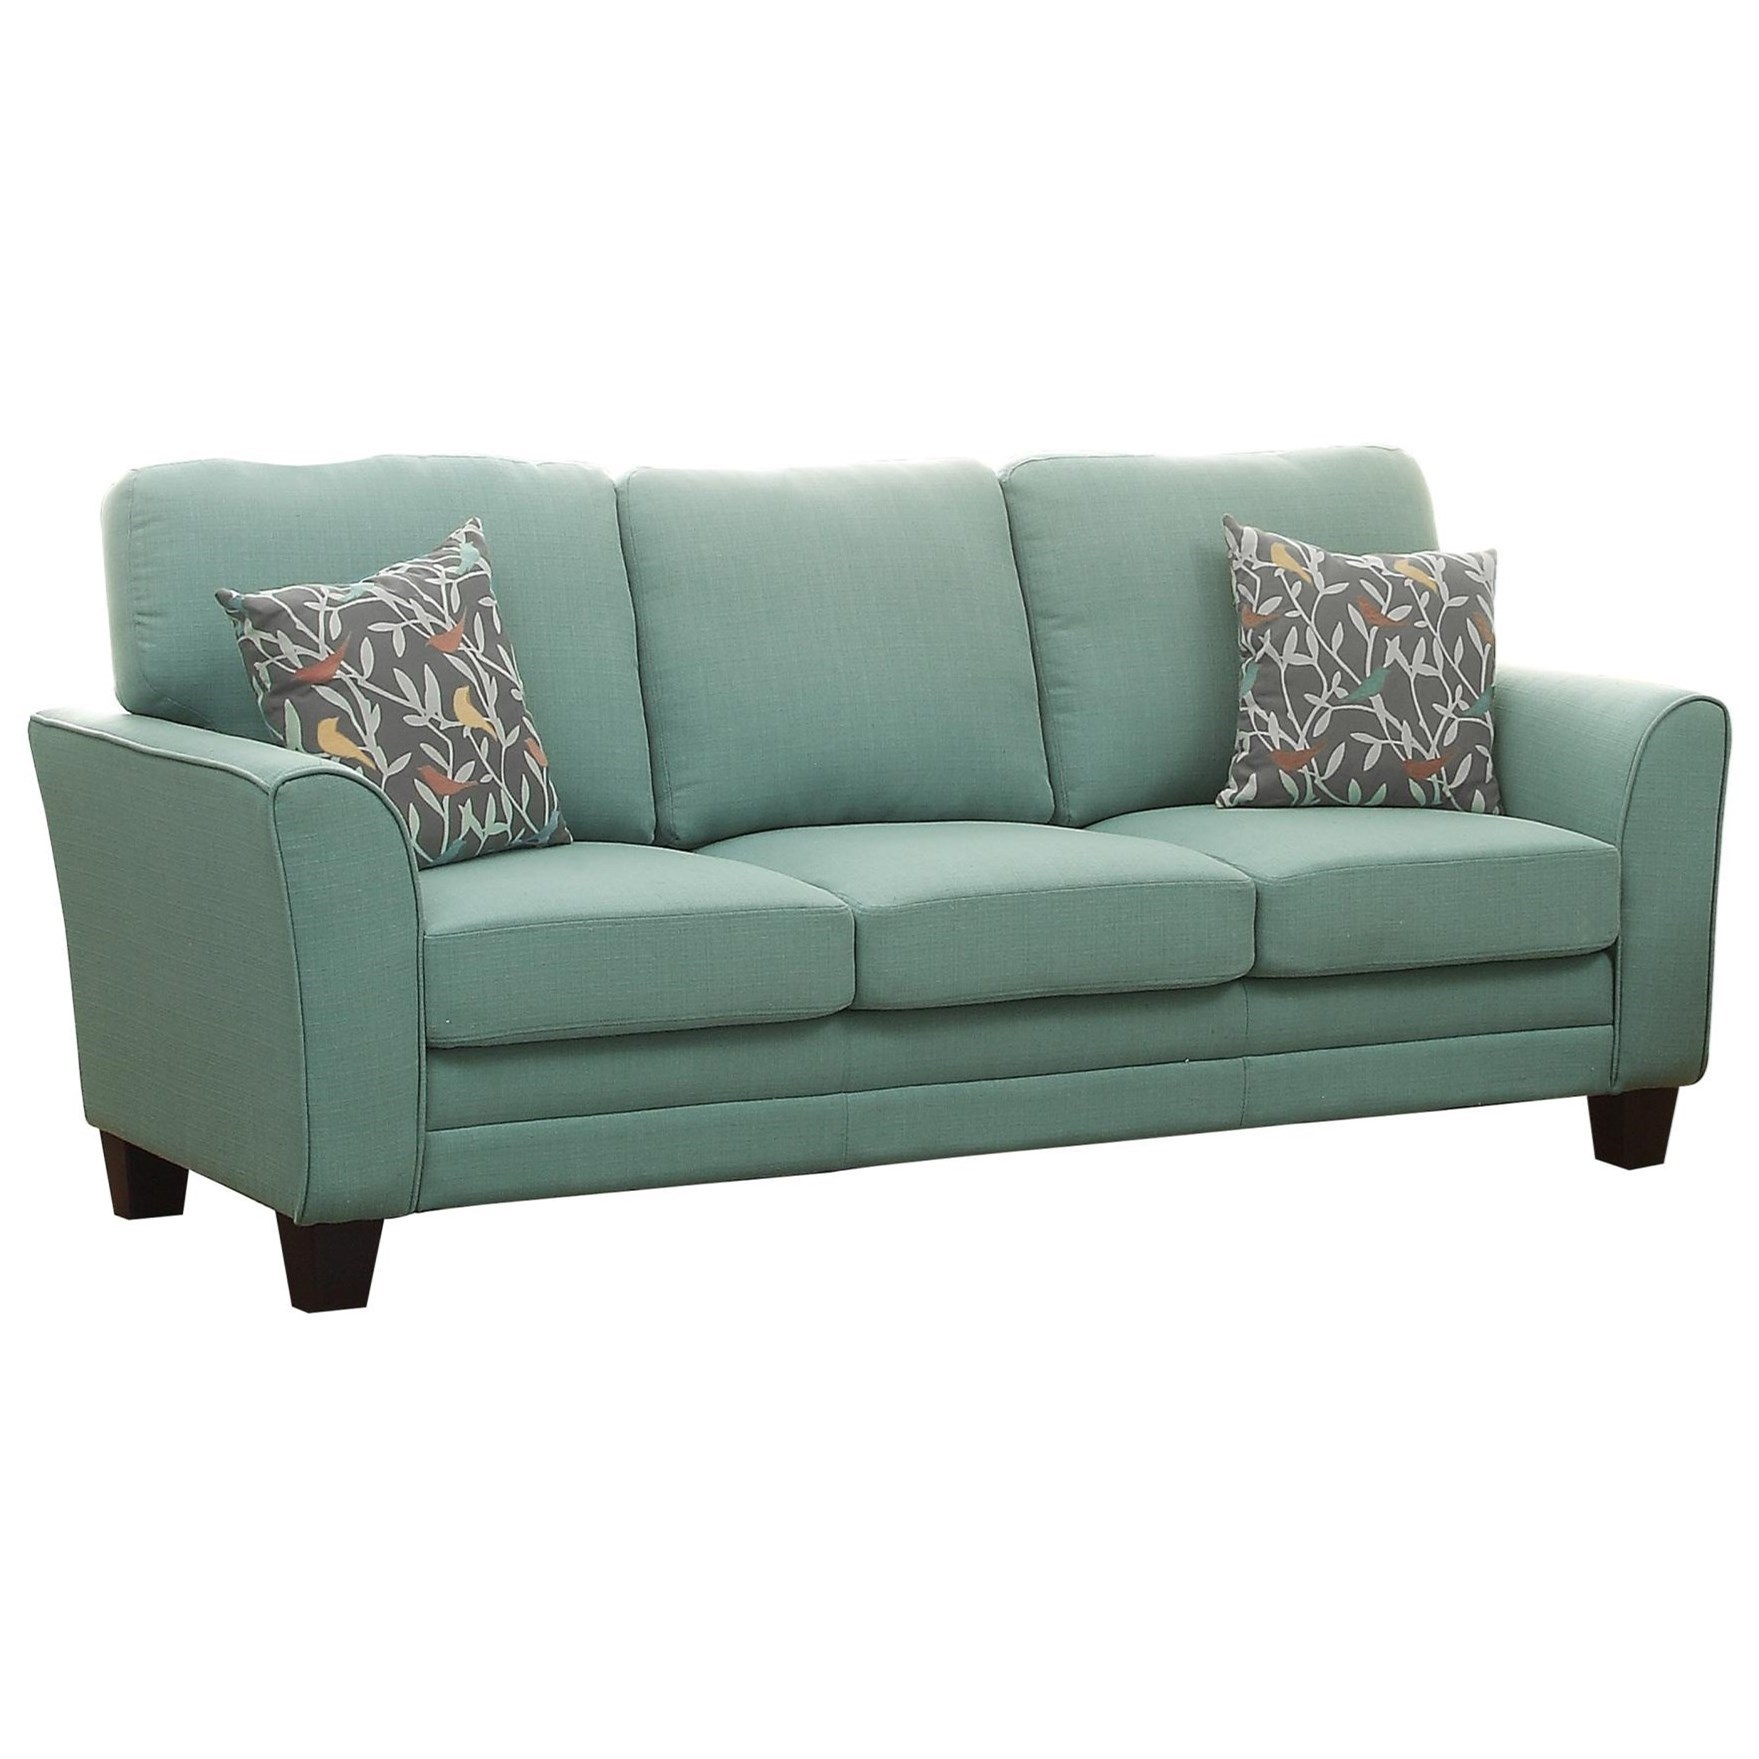 Adair Sofa by Homelegance at Value City Furniture